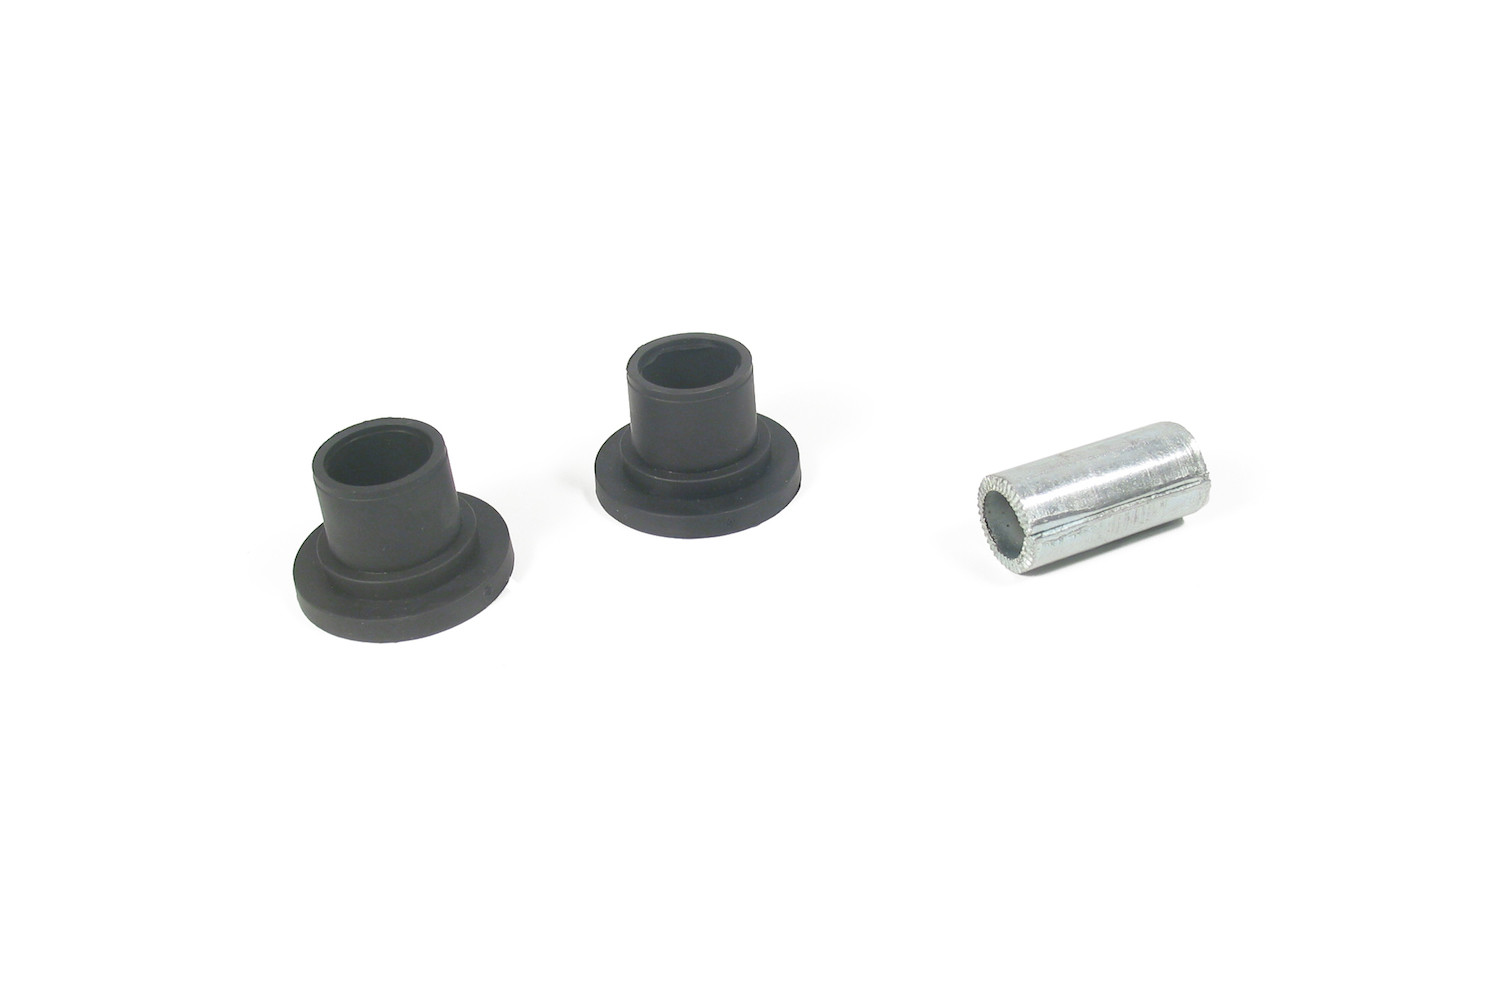 MEVOTECH INC. - Rack & Pinion Mount Bushing - MEV MK6349